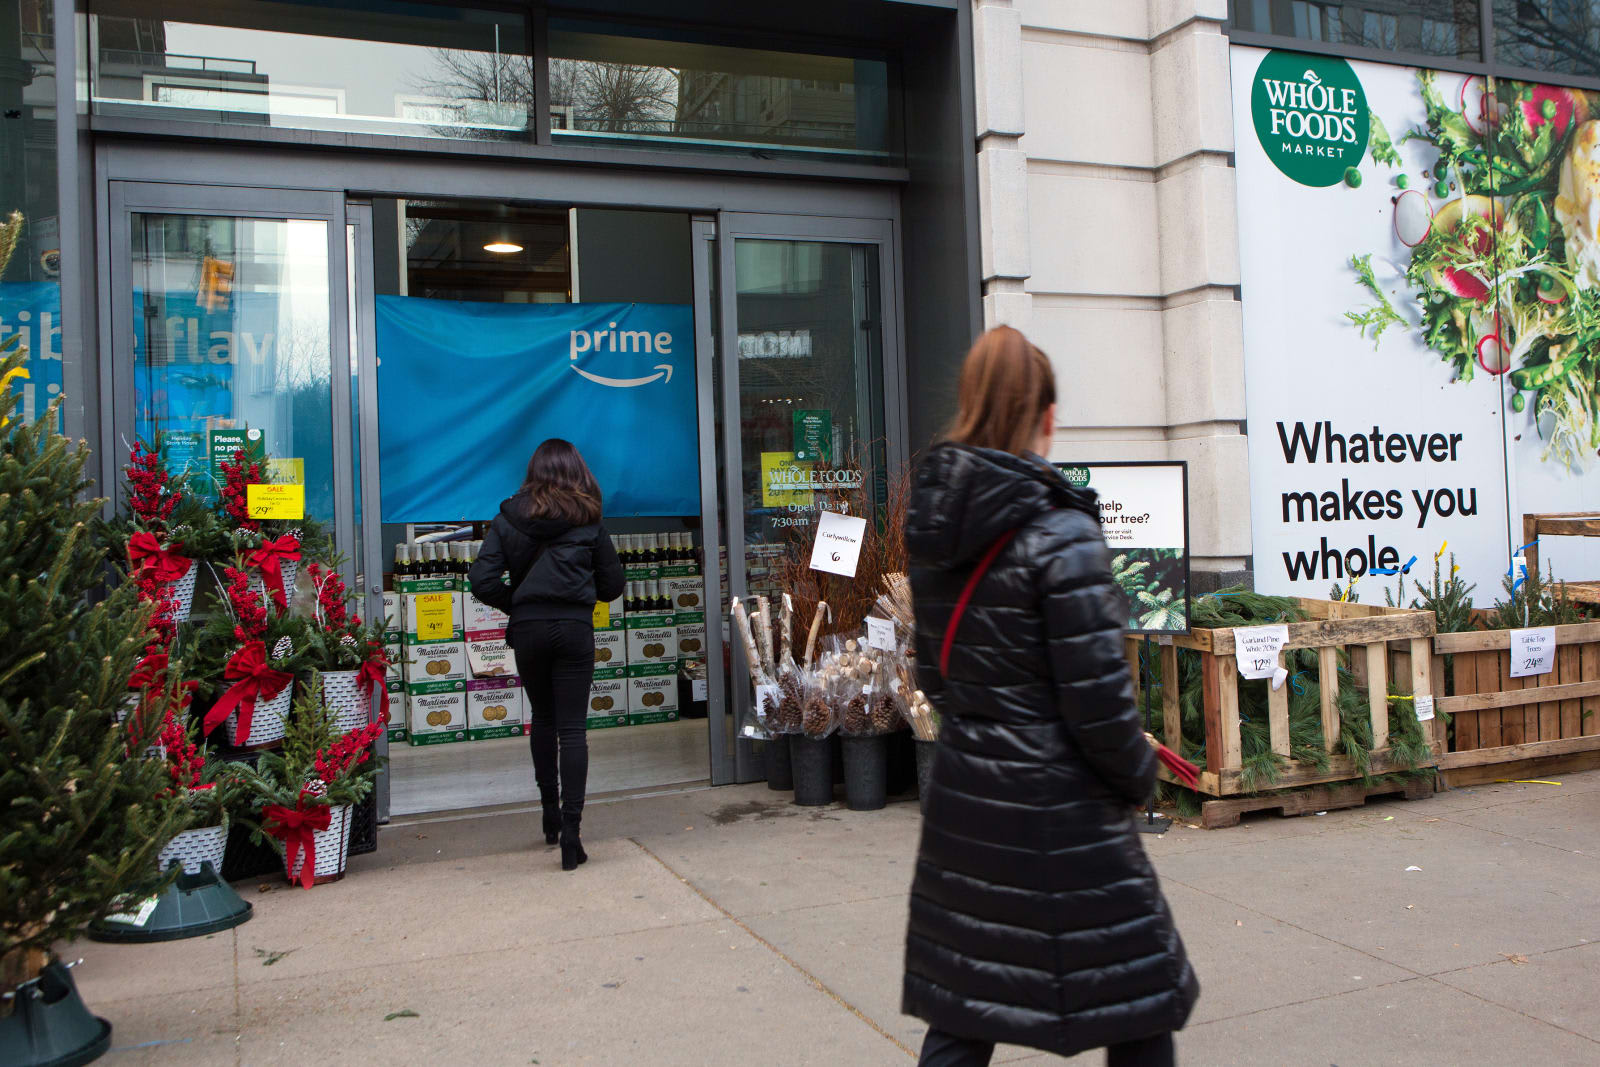 Amazon will build more Whole Foods stores to expand Prime Now